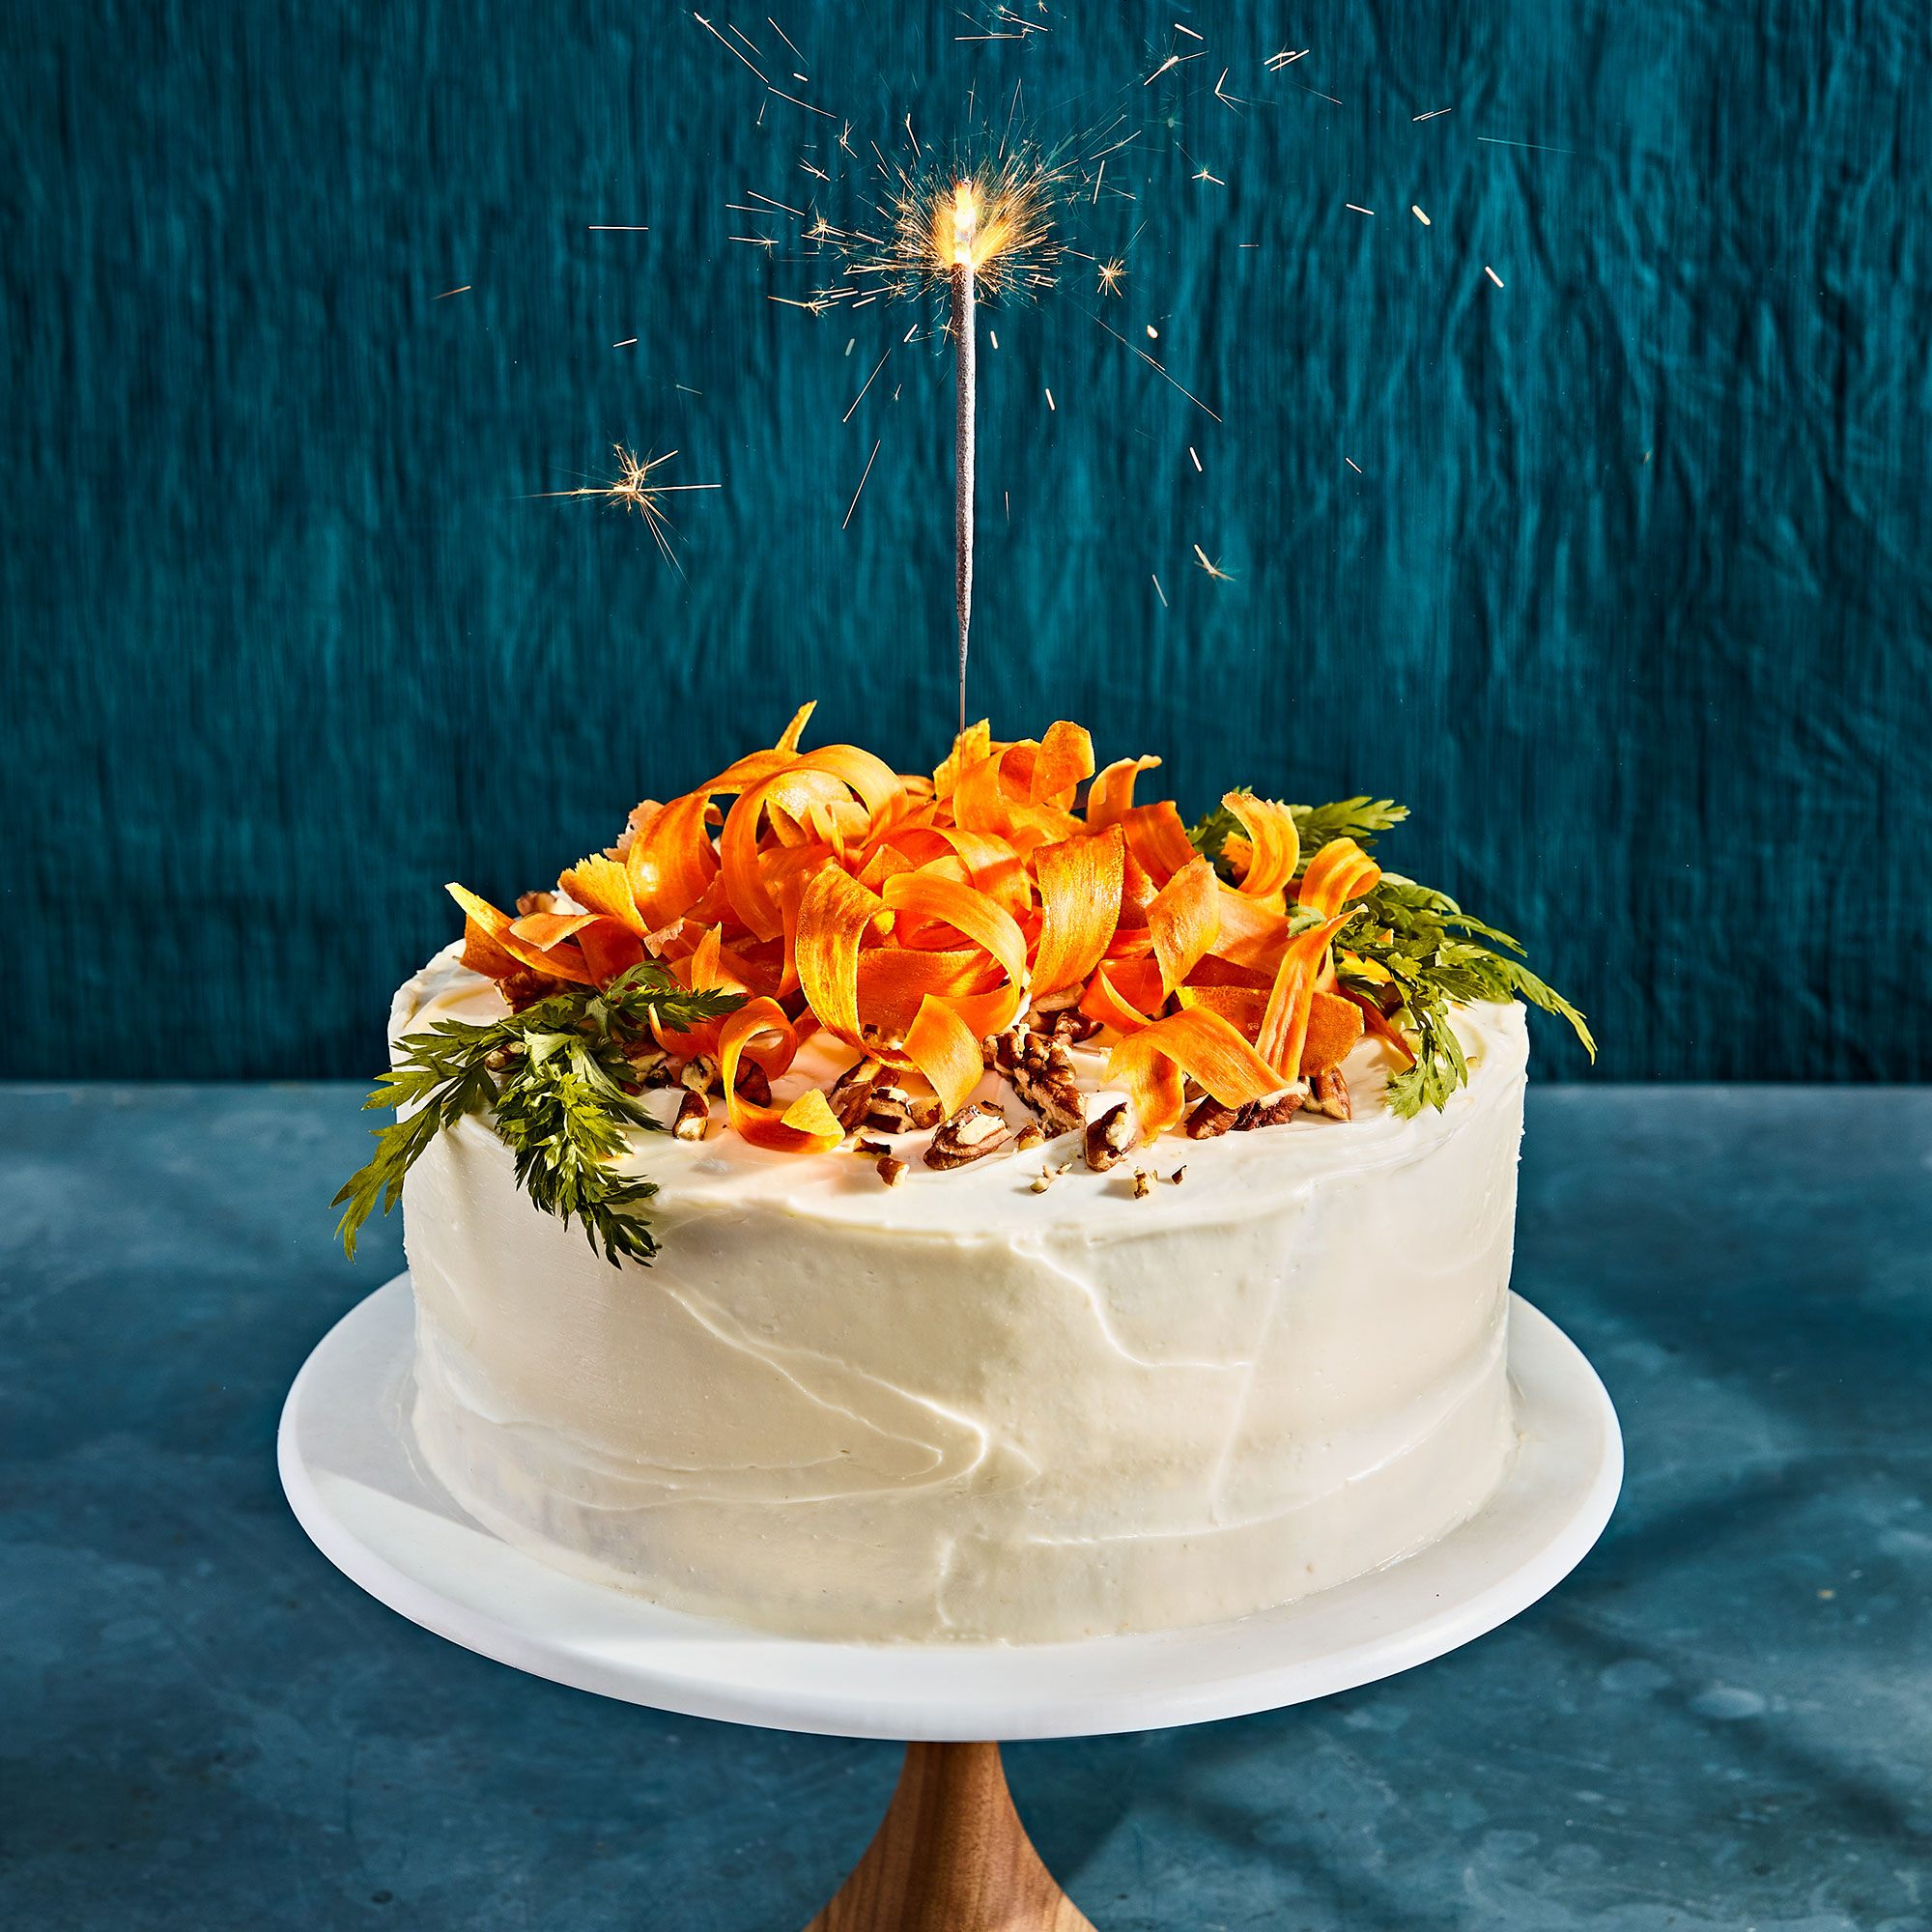 frosted cake topped with carrot peels with a sparkler on top on a deep blue background